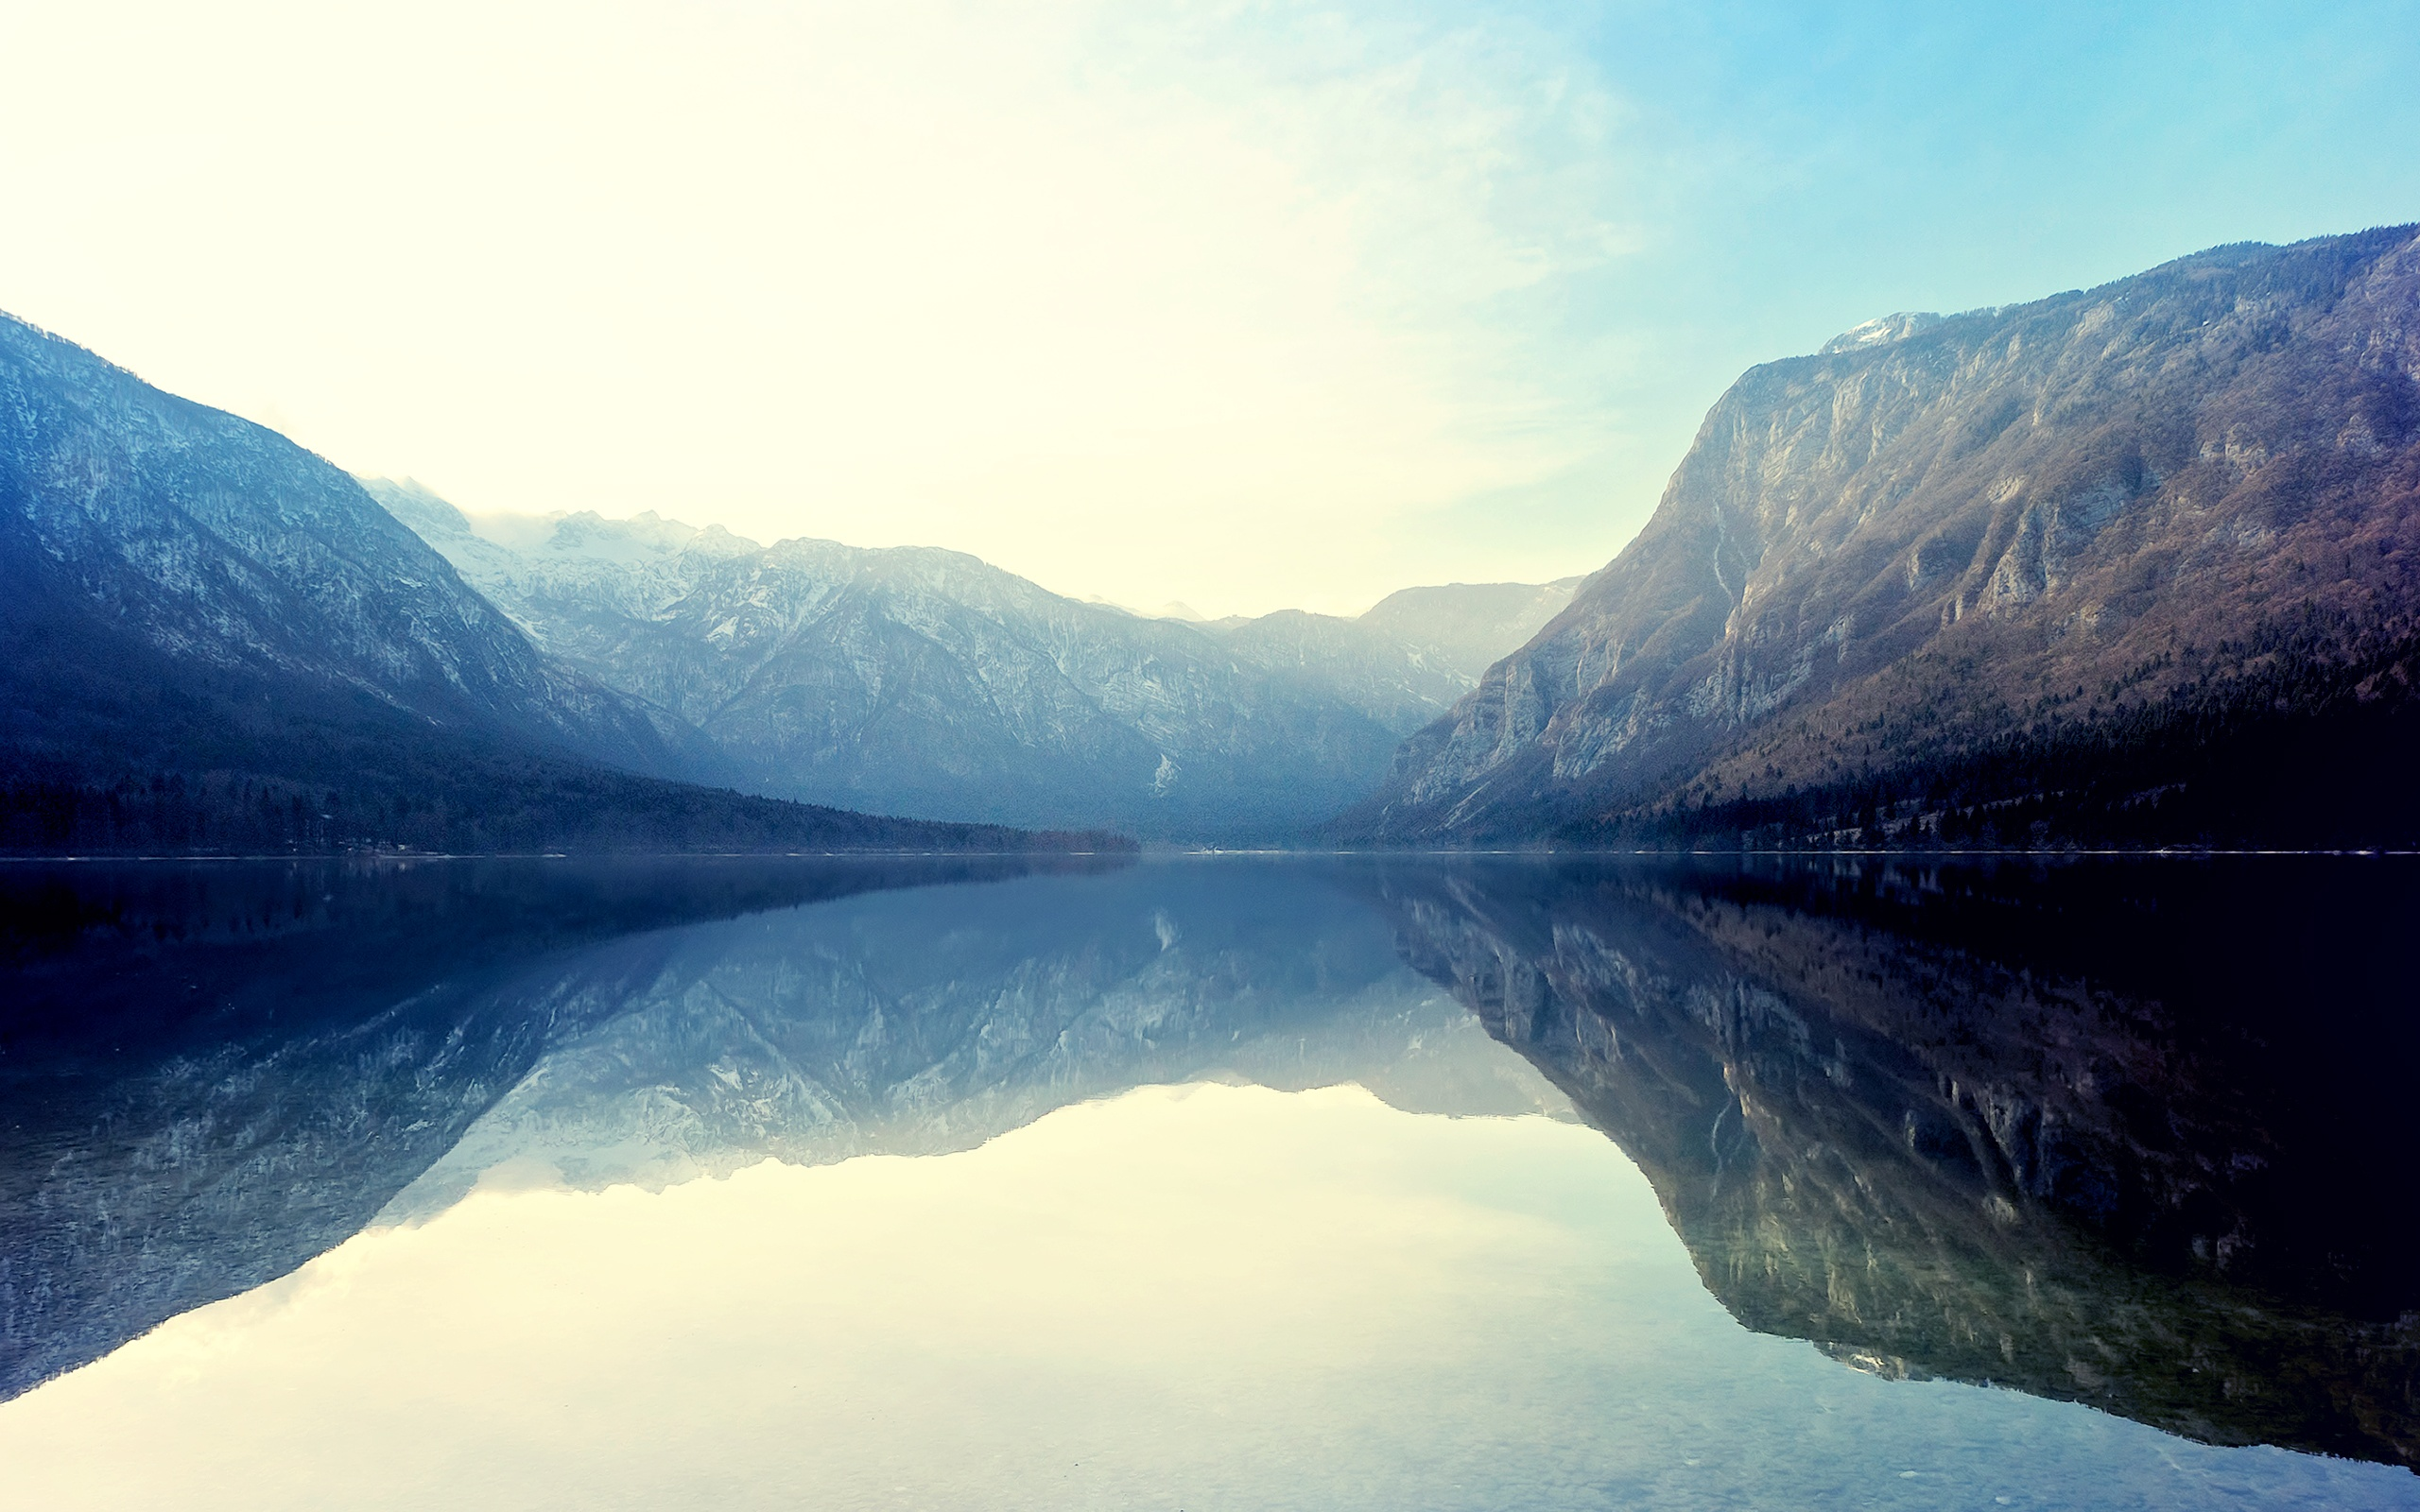 Top Wallpaper Mountain Water - lake_reflections_in_water_11893  Graphic_807359.jpg